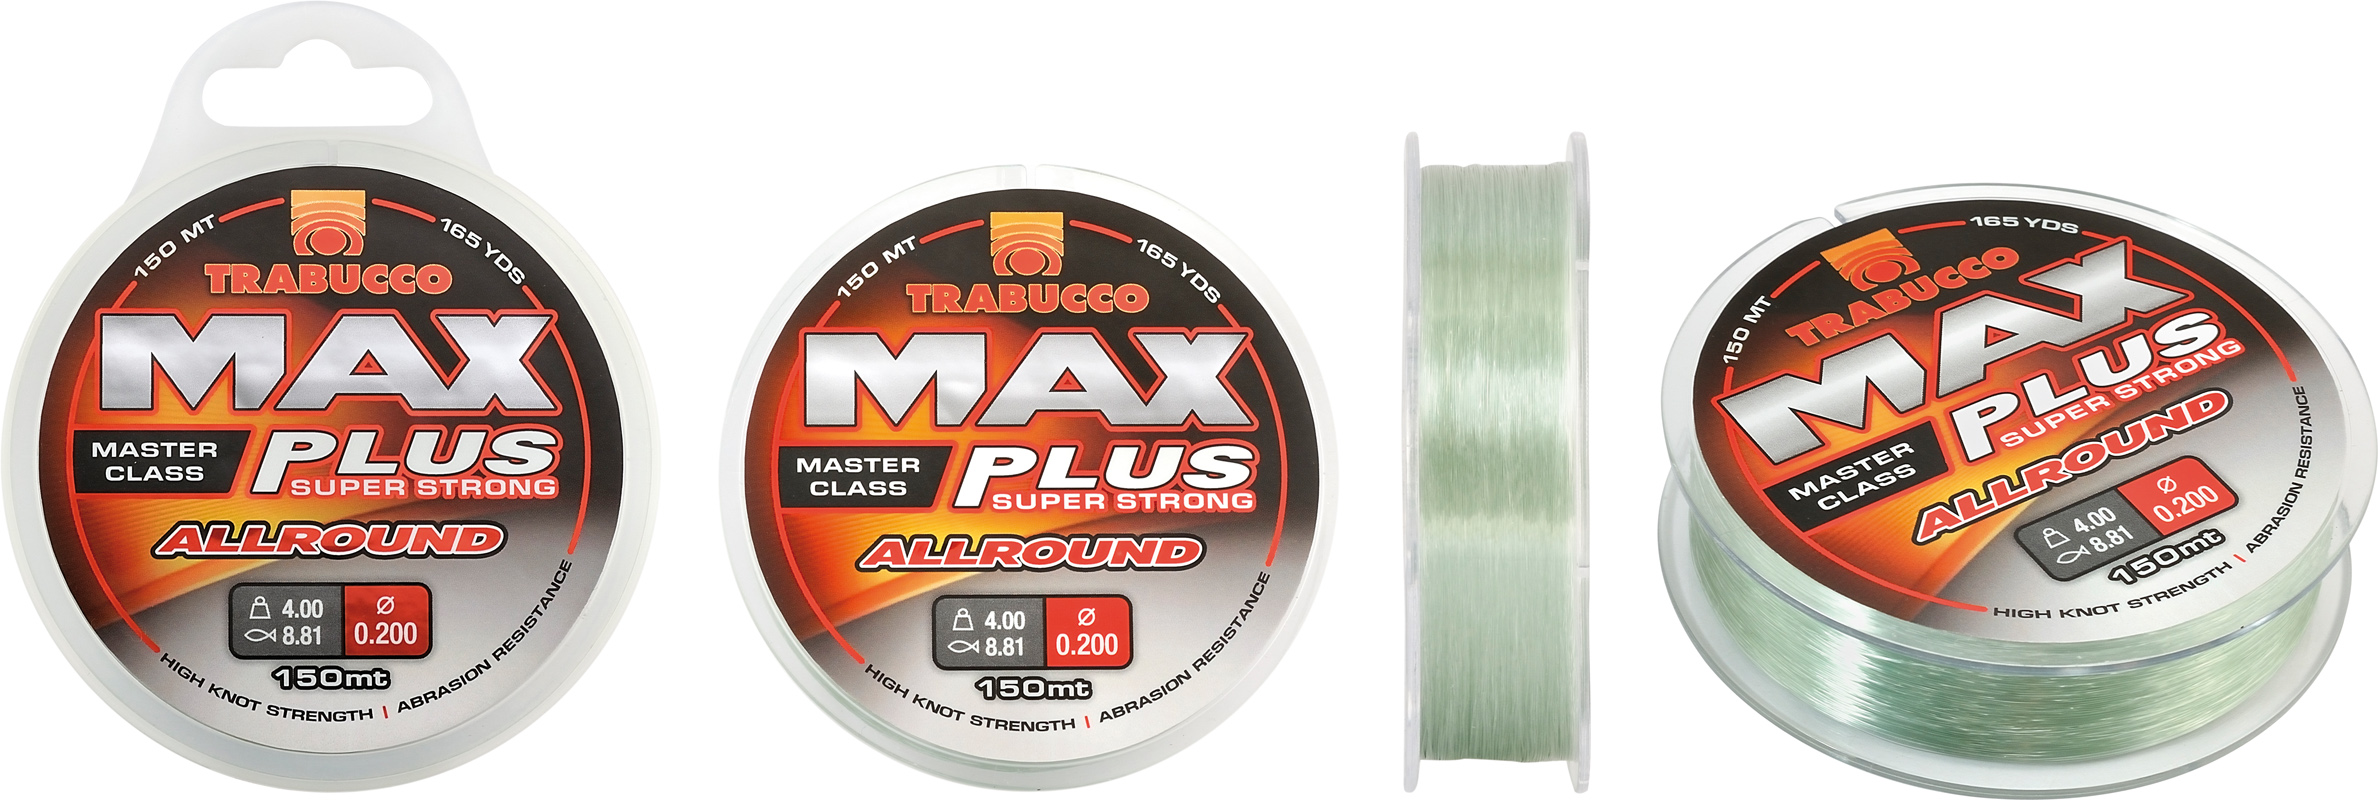 Trabucco Max Plus Allround 014